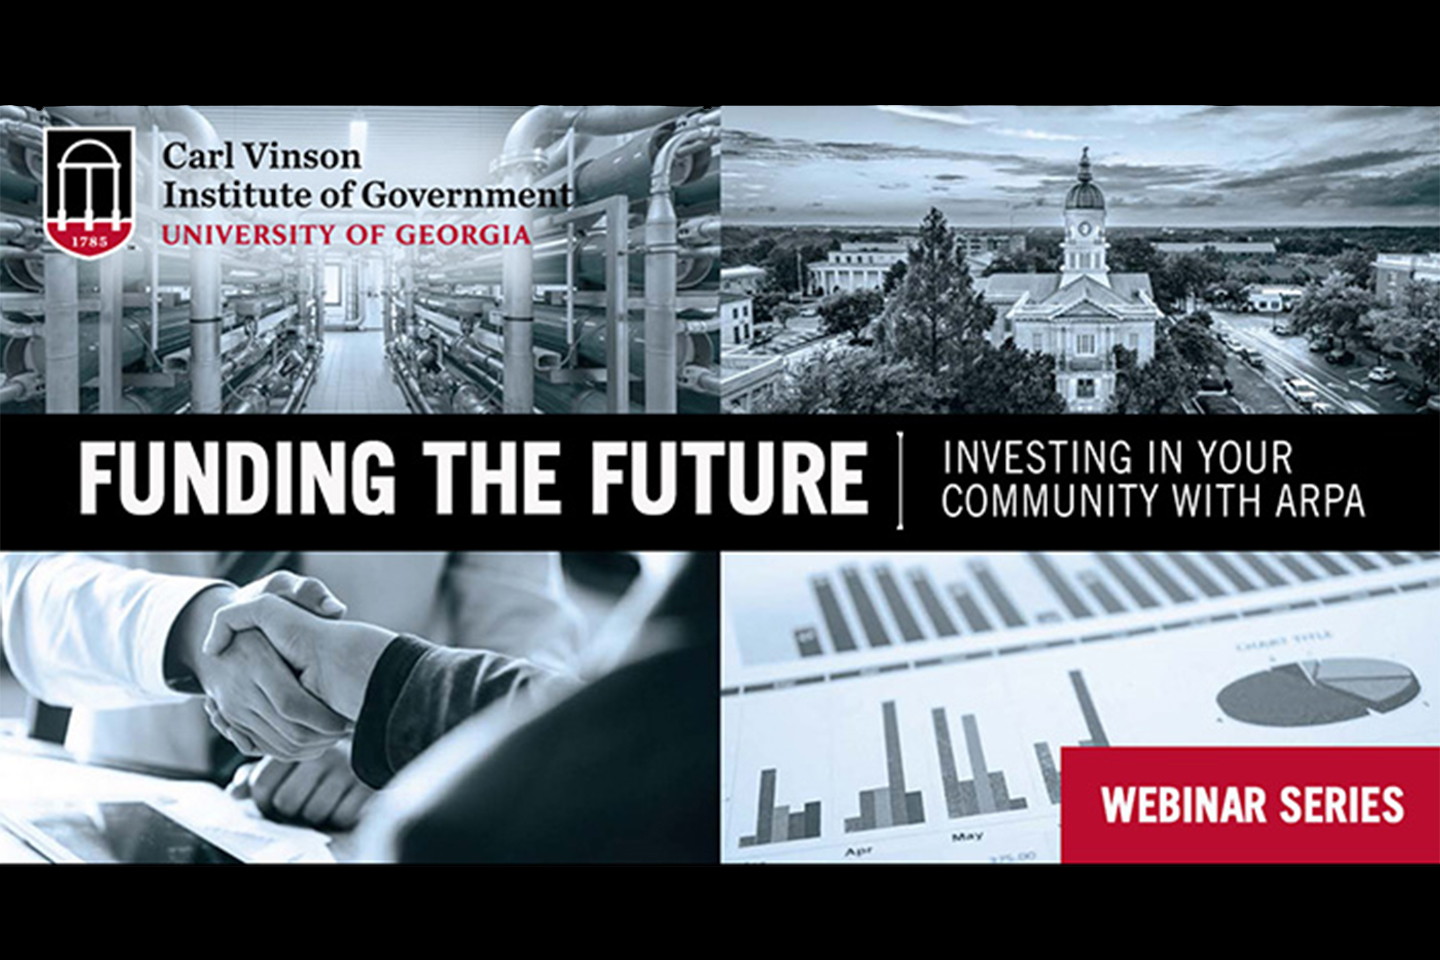 A graphic image for the Funding the Future webinar series